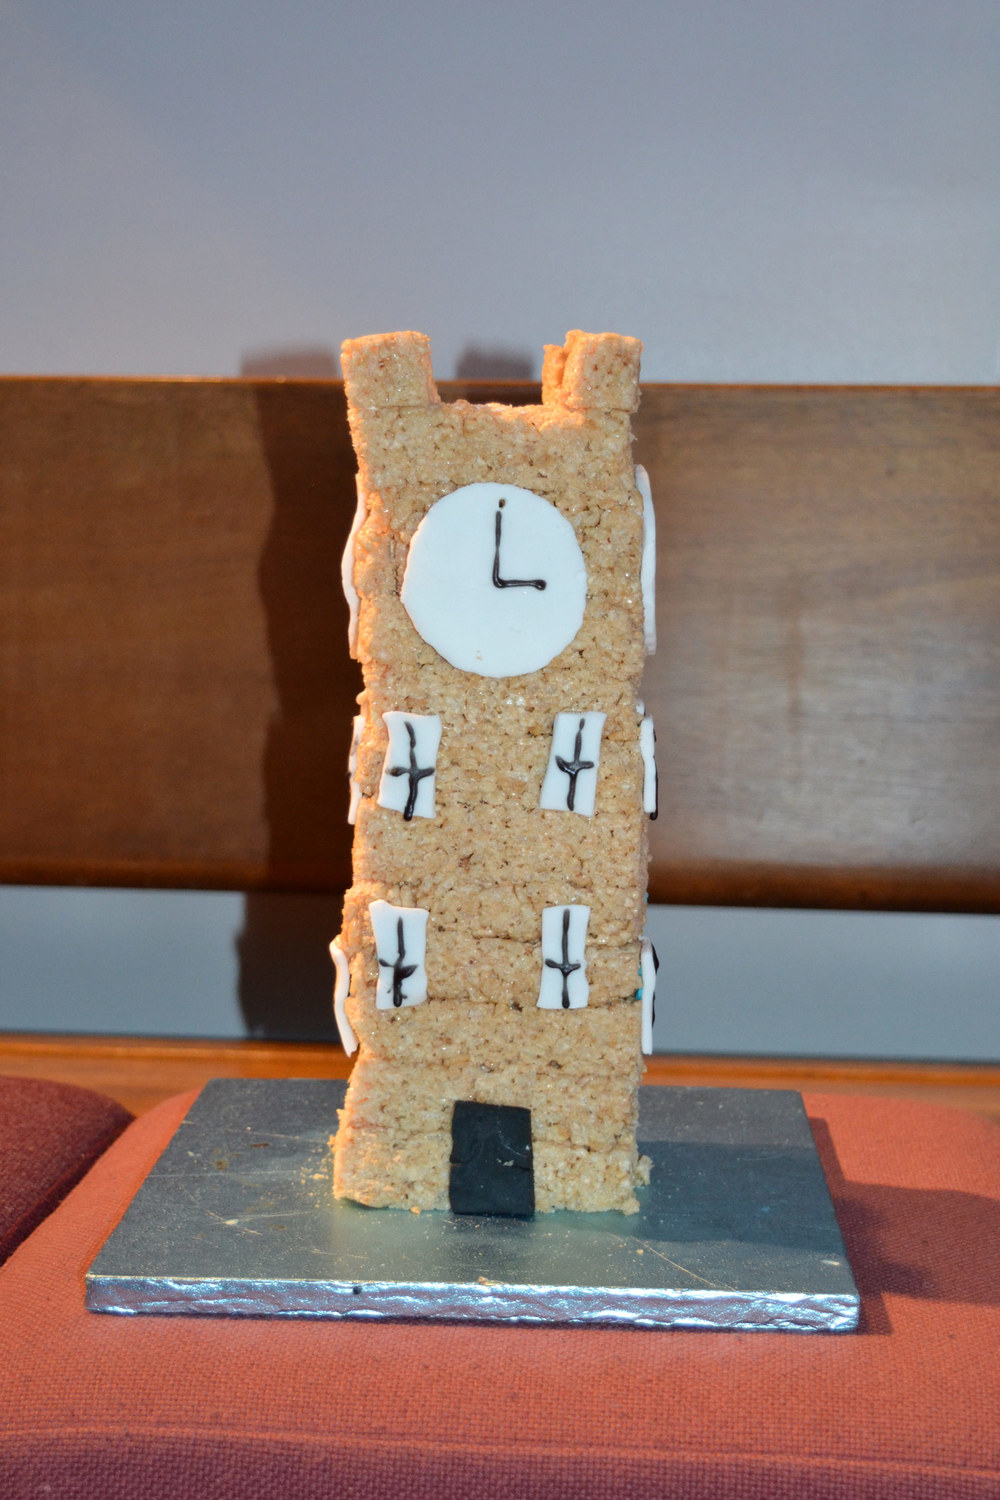 Photo: The clock tower is made from Rice Krispies